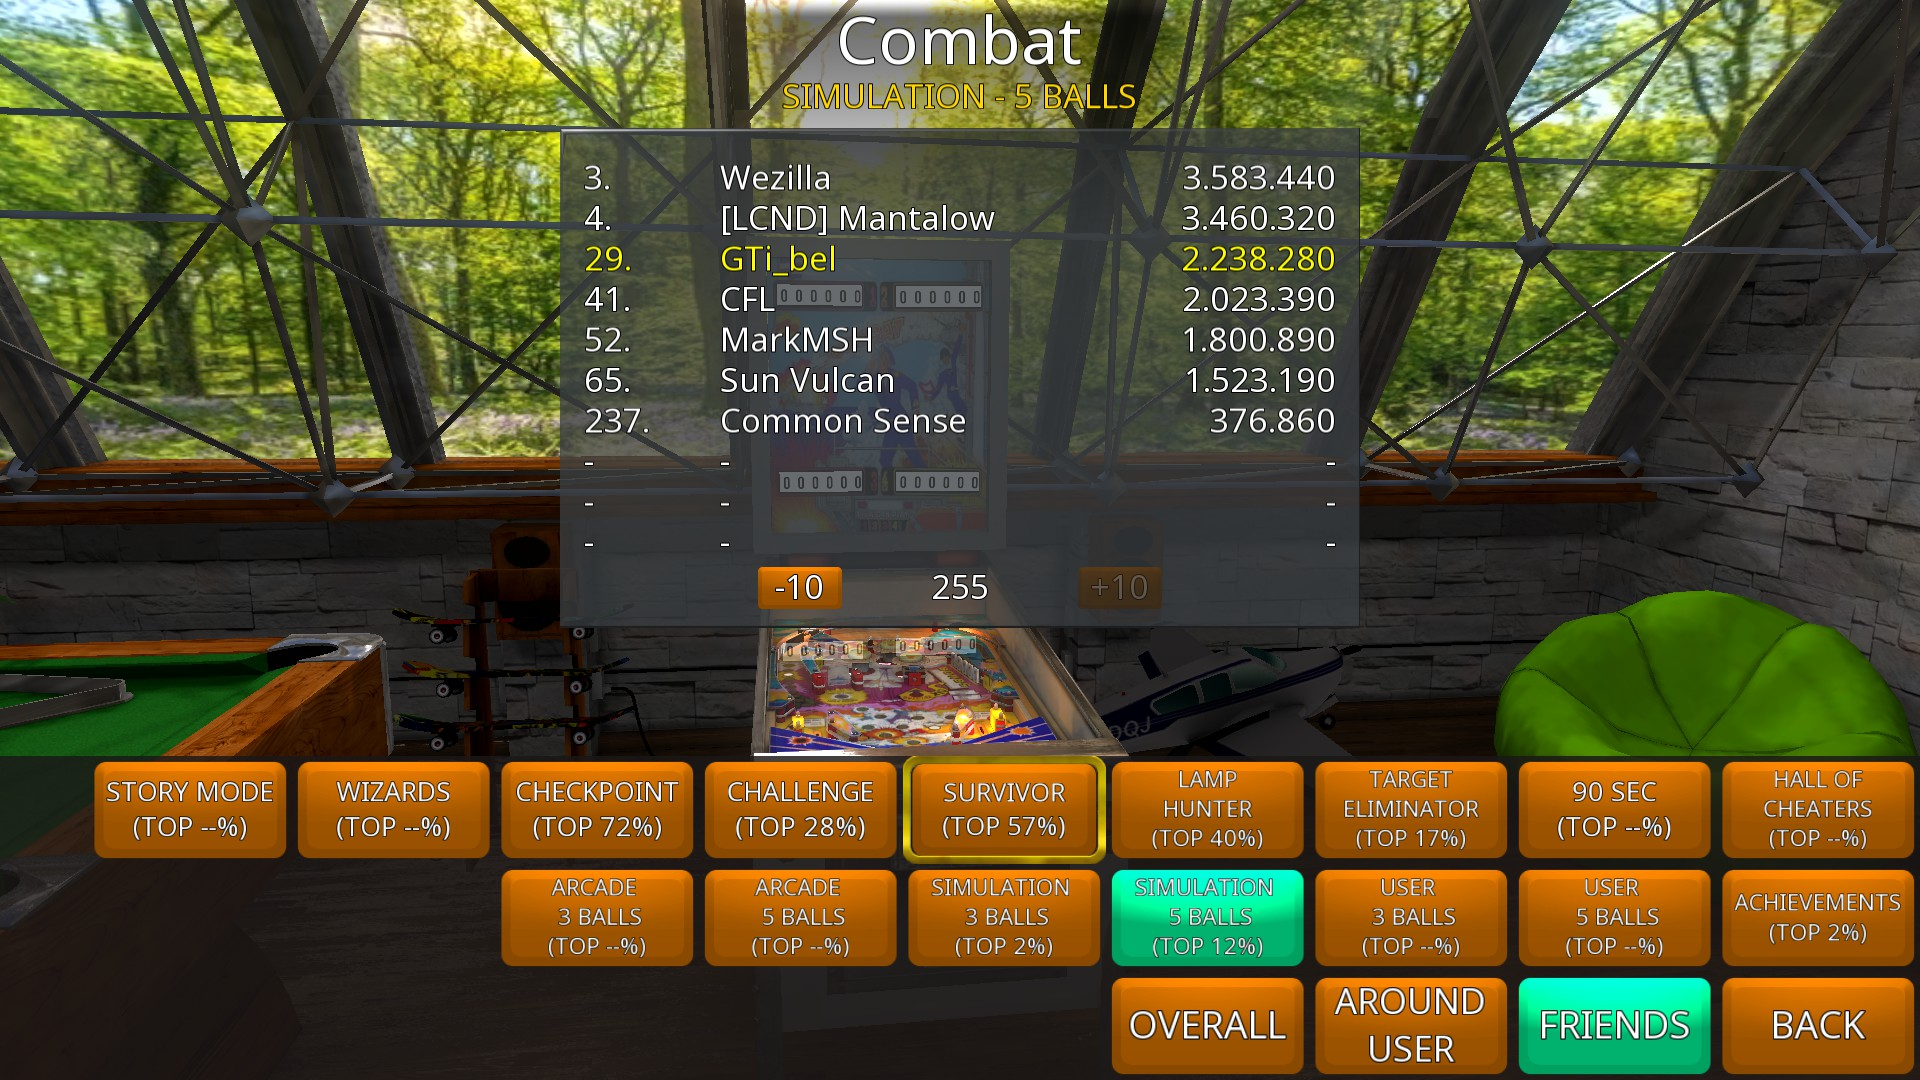 GTibel: Zaccaria Pinball: Combat [5 balls] (PC) 2,238,280 points on 2018-08-13 07:32:23